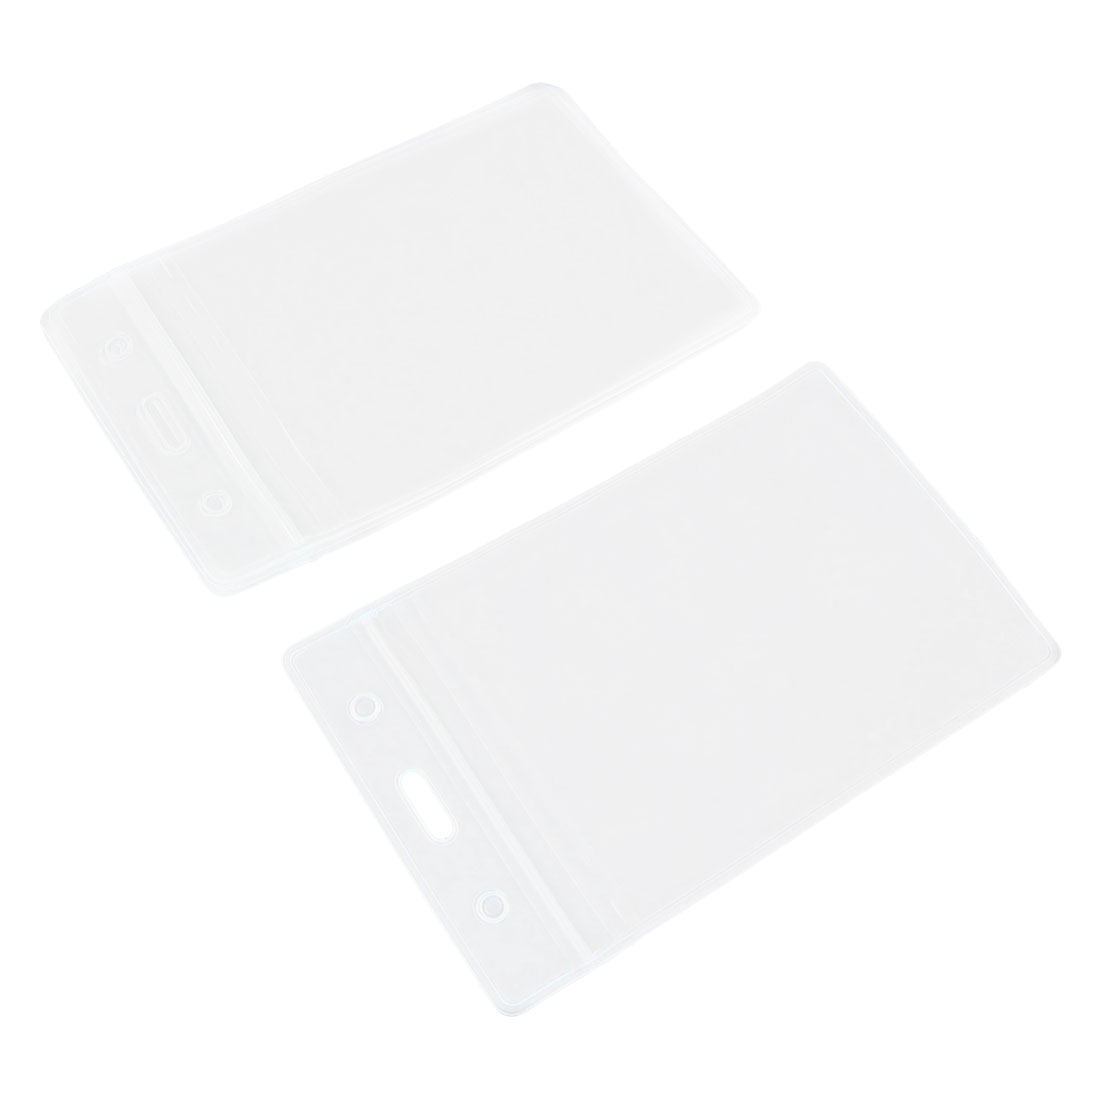 5 Pcs Office School Clear Waterproof Vertical Compact ID Card Badge Holders